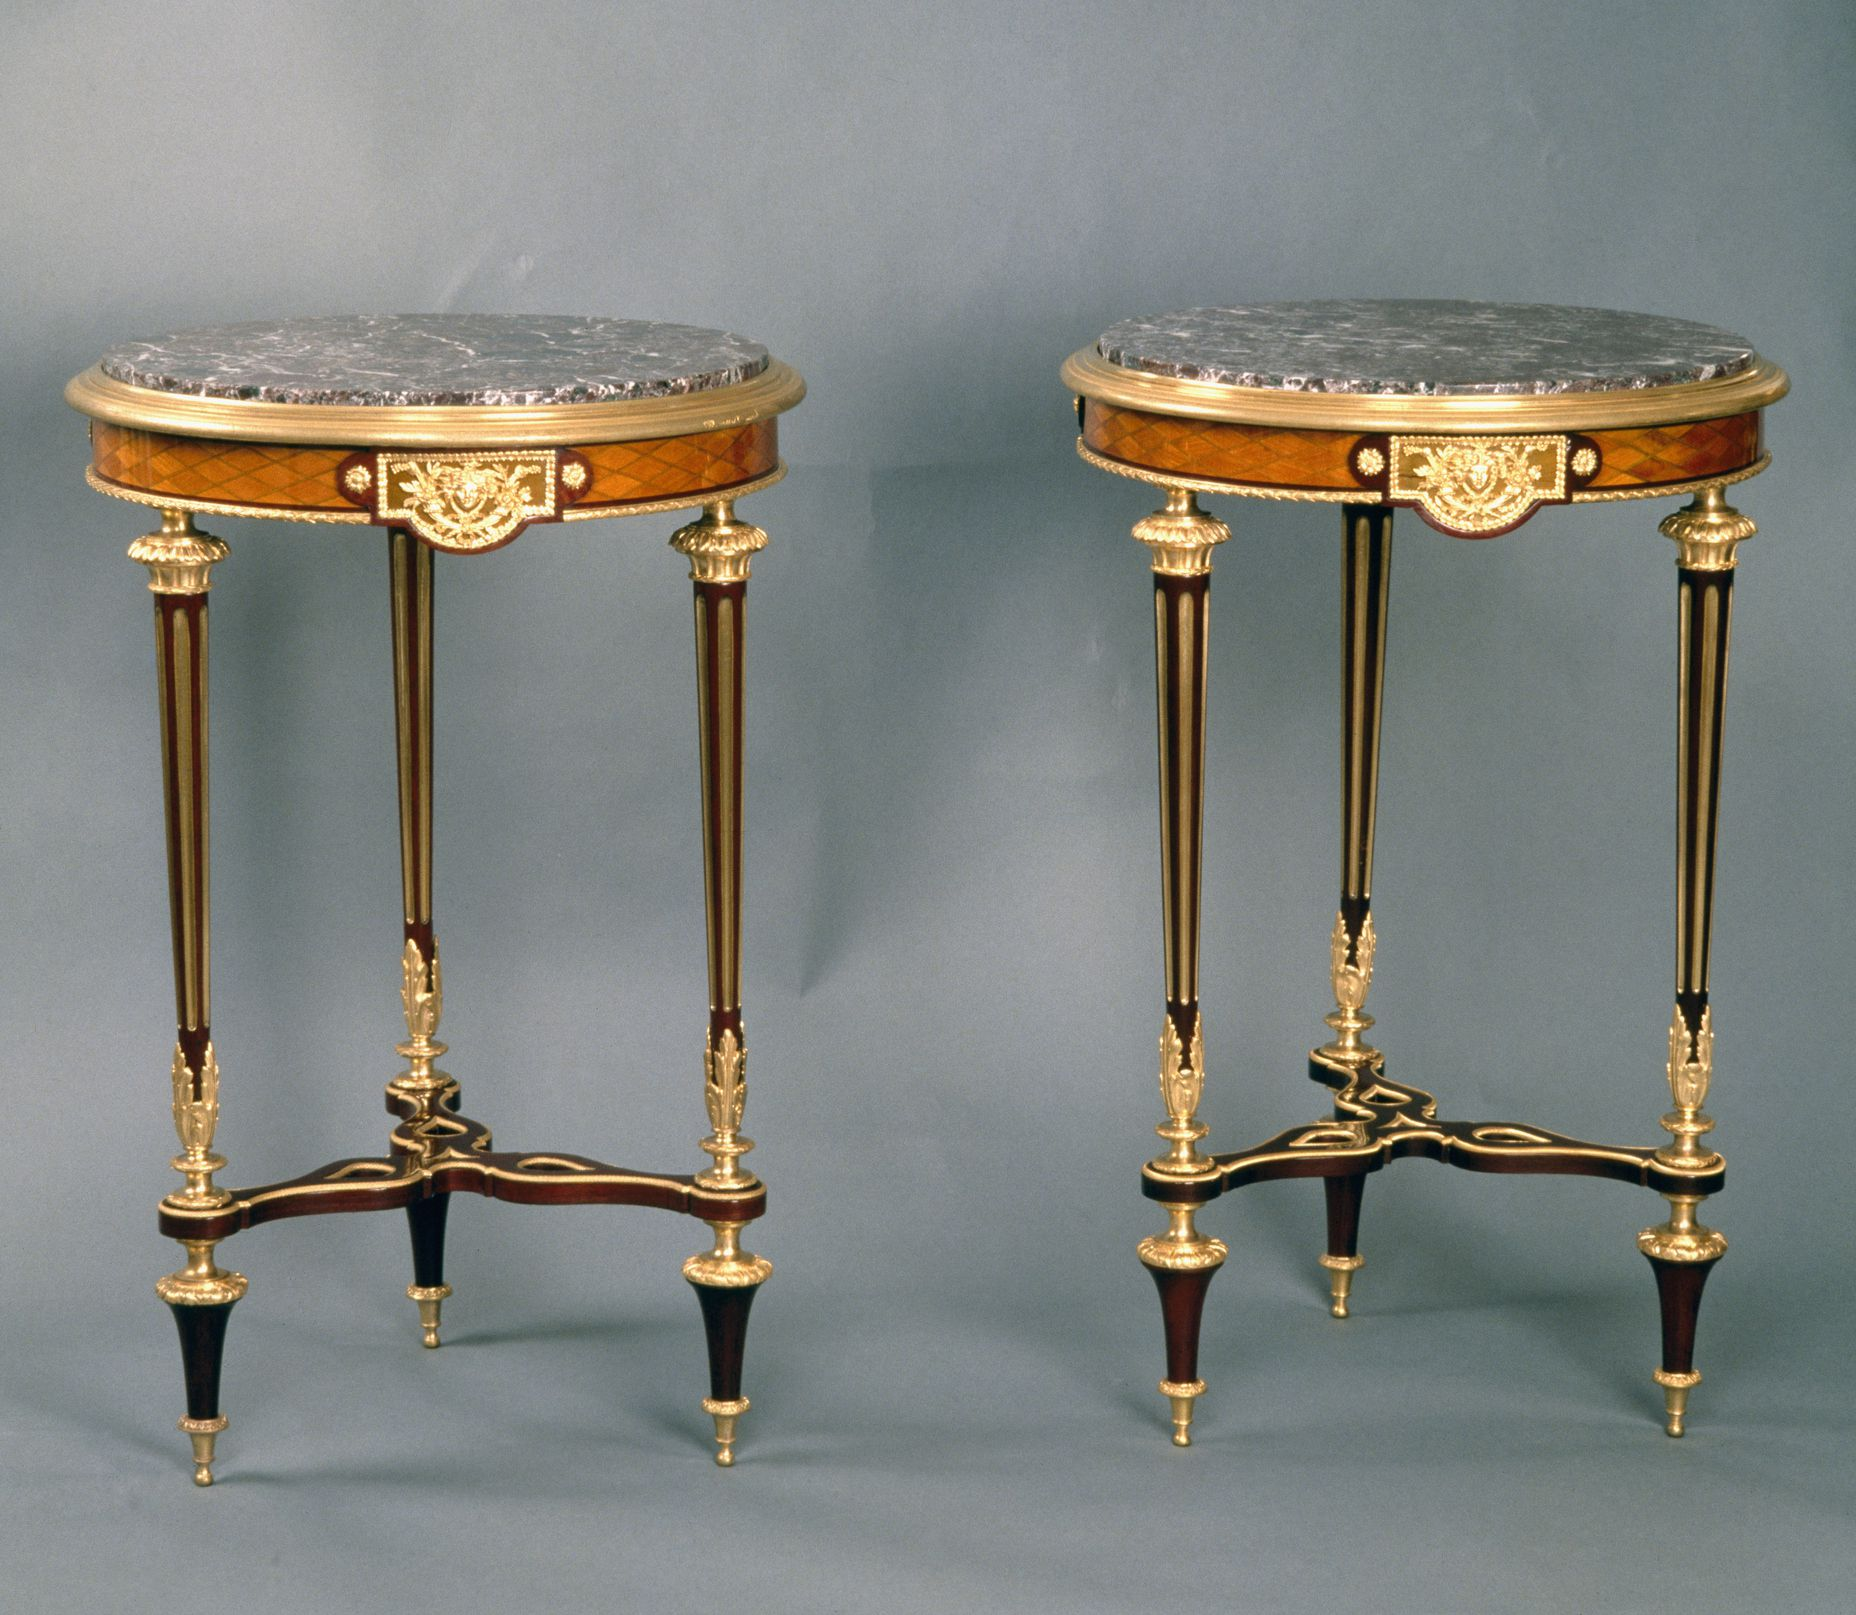 antique table identification guide pair small louis xvi style second empire napoleon iii lemonwood tripod gueridon tables with diamond shaped inlays and fleur pecher marble top